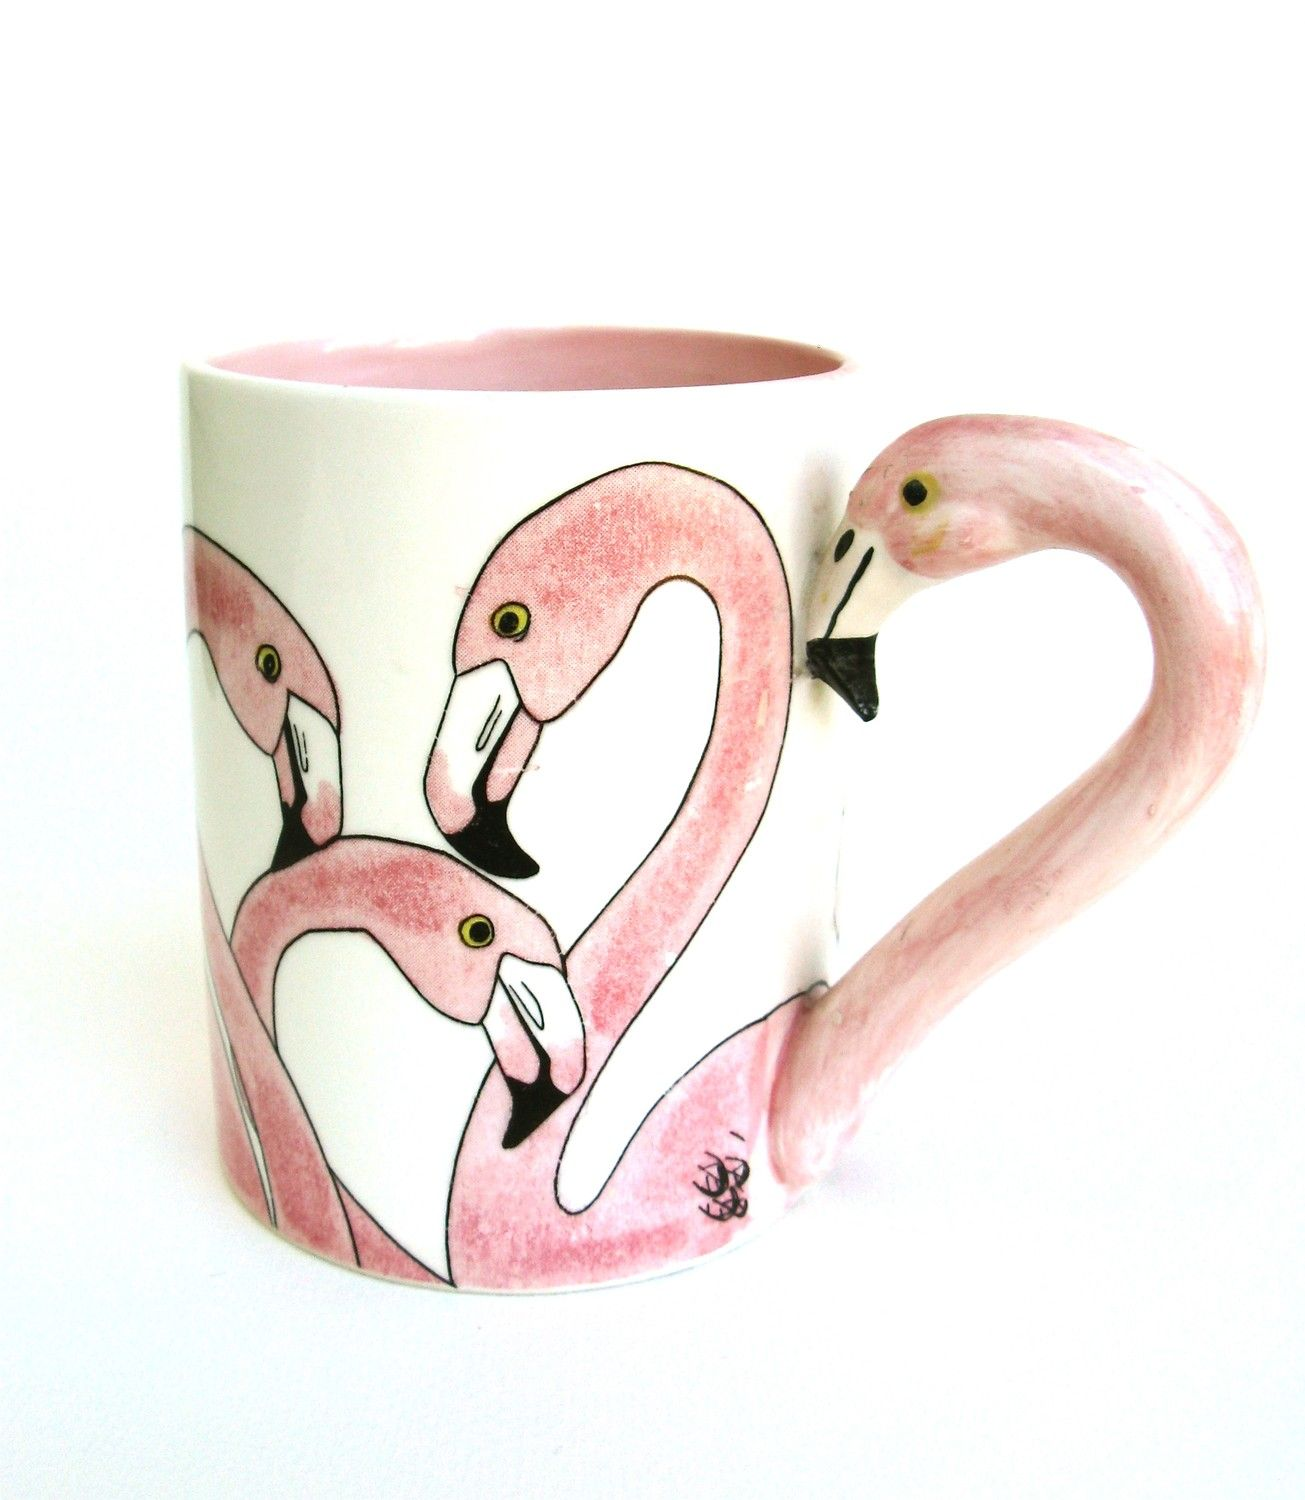 Ah This Is It Just Like My First Flamingo Mug Ever The That Started Love Of Flamingos But After About 15 Years